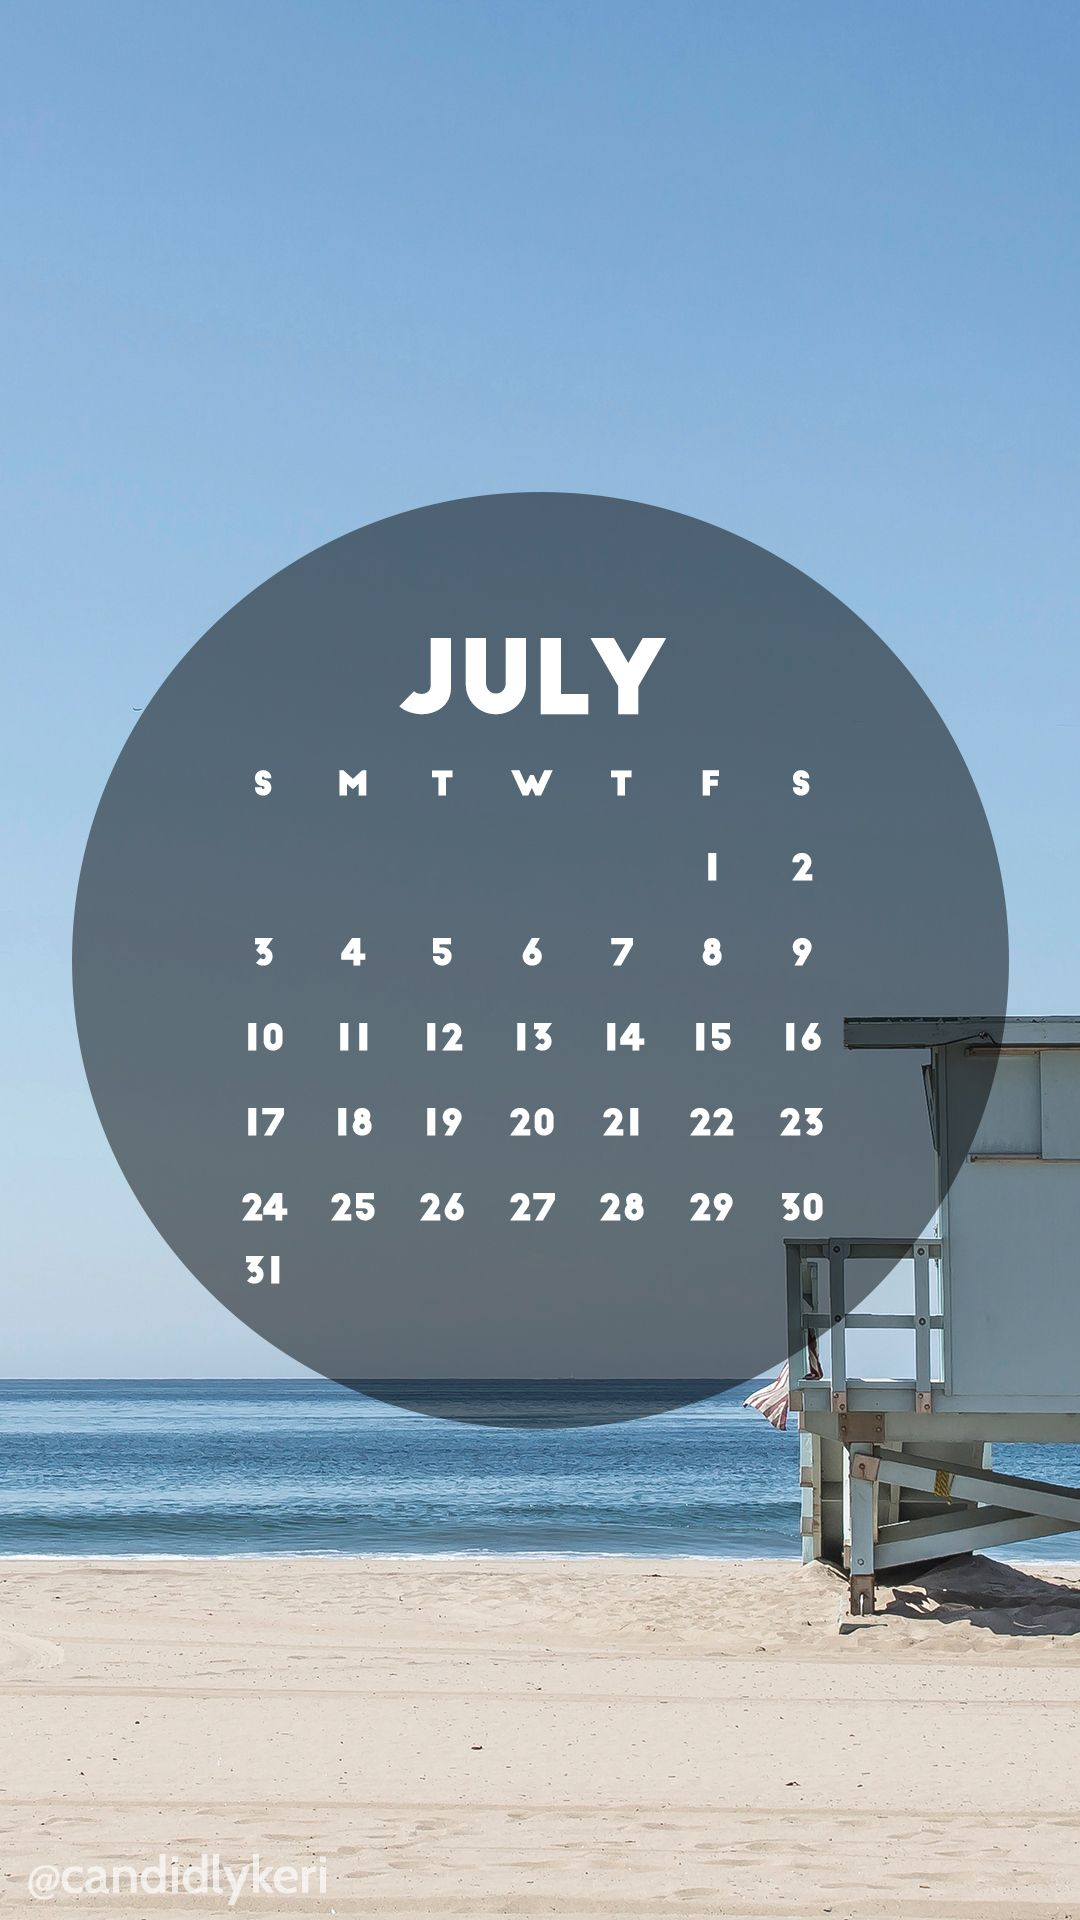 Beach scene california lifeguard stand july 2016 calendar wallpaper beach scene california lifeguard stand july 2016 calendar wallpaper free download for iphone android or desktop voltagebd Gallery